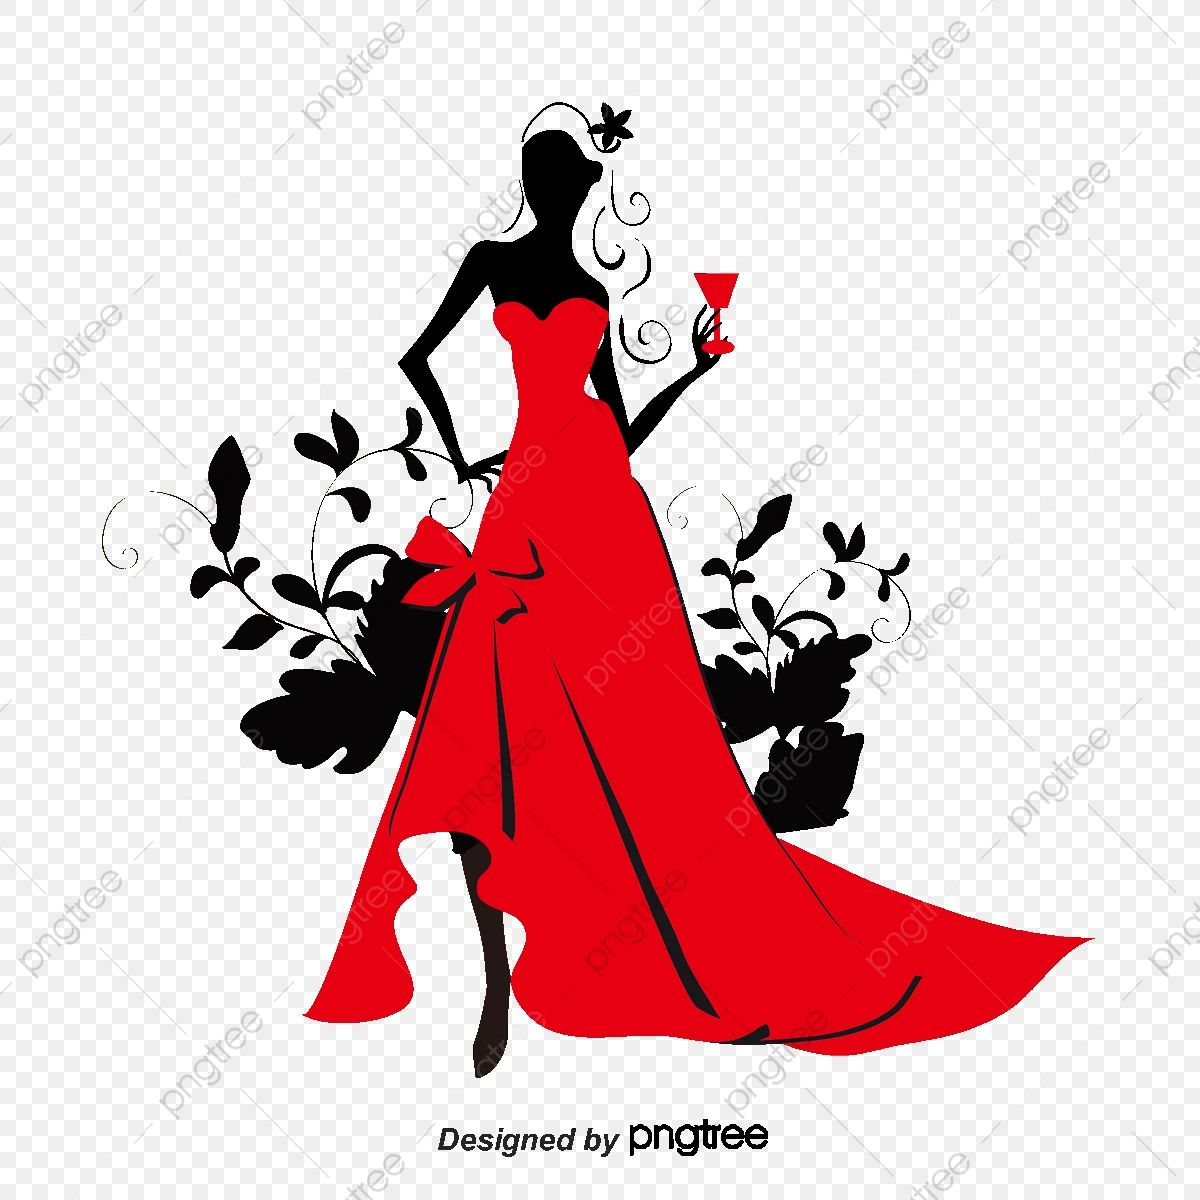 Download This Wearing A Beautiful Red Dress Silhouette Figures Wineglass Beauty Png Clipart Image Wi In 2021 Beautiful Red Dresses Fashion Design Sketches Red Dress